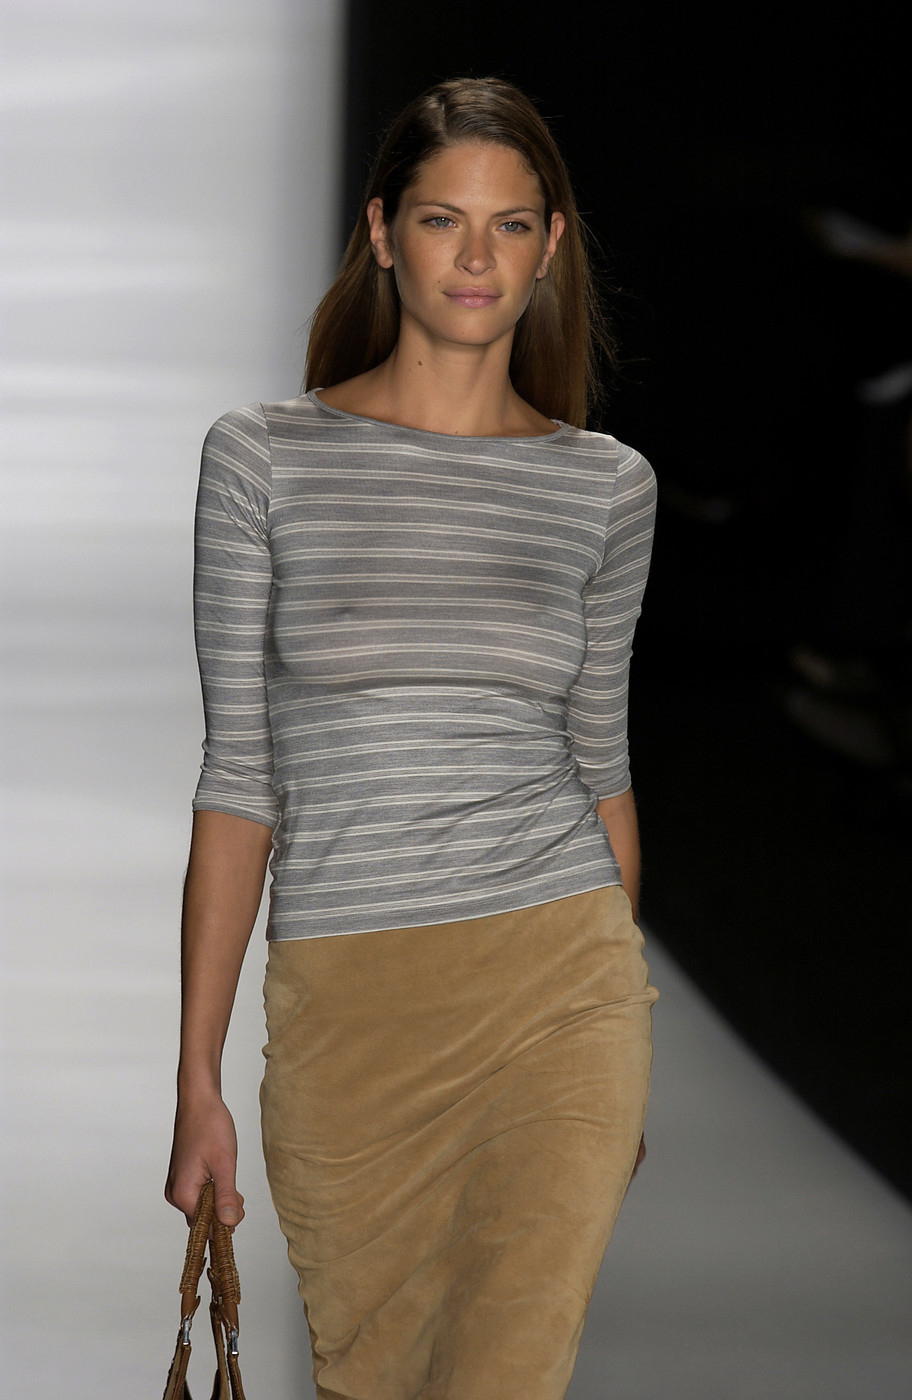 Michael Kors Spring 2003 Runway Pictures Livingly